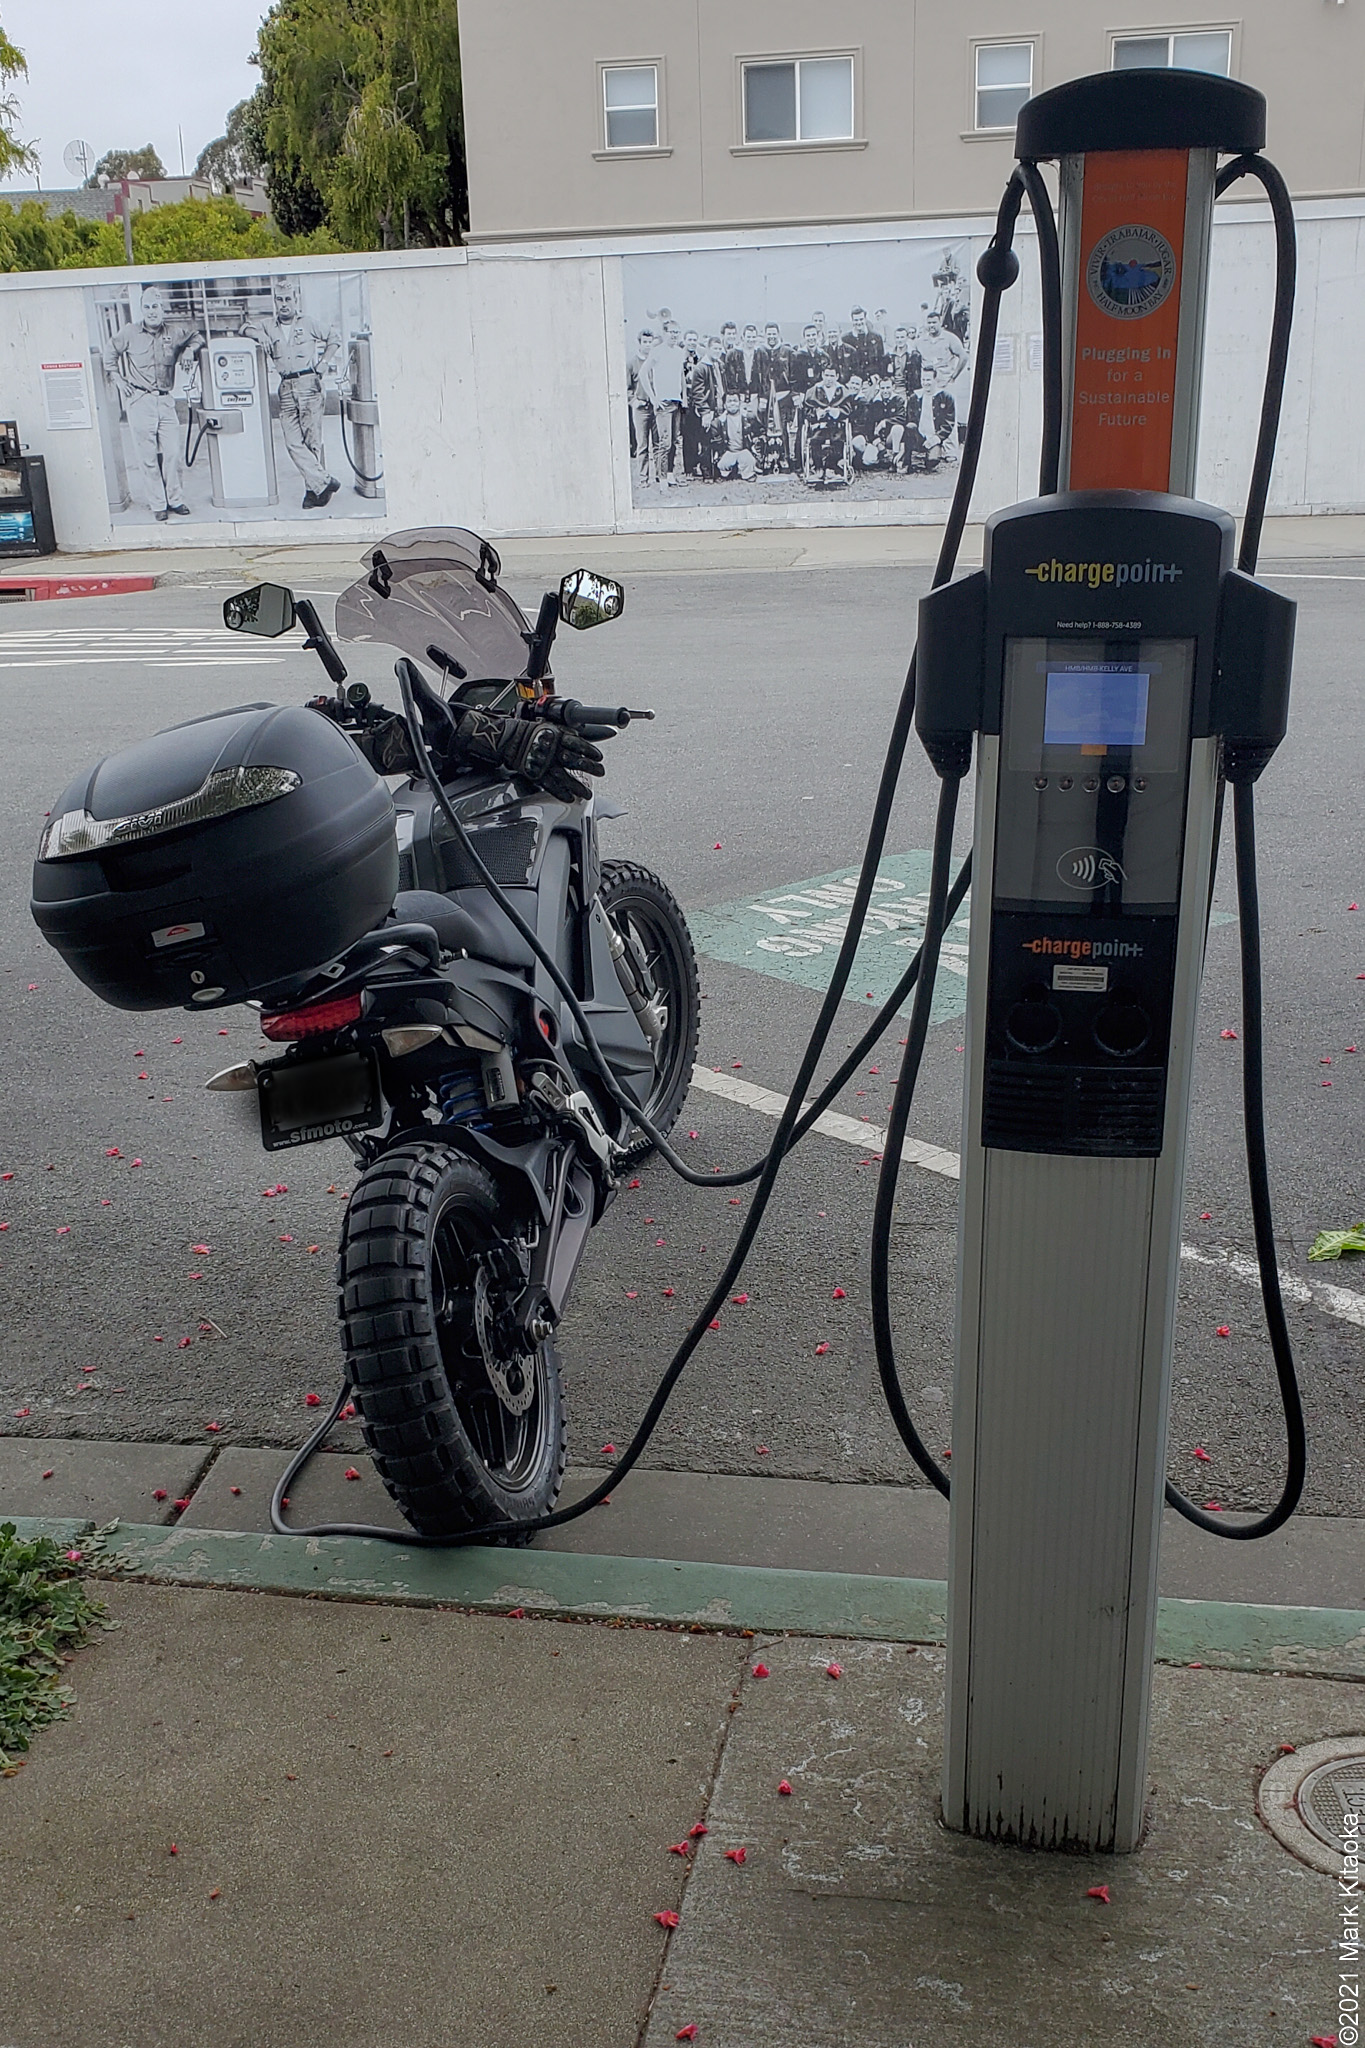 Zero DSR parked at Chargepoint EV station